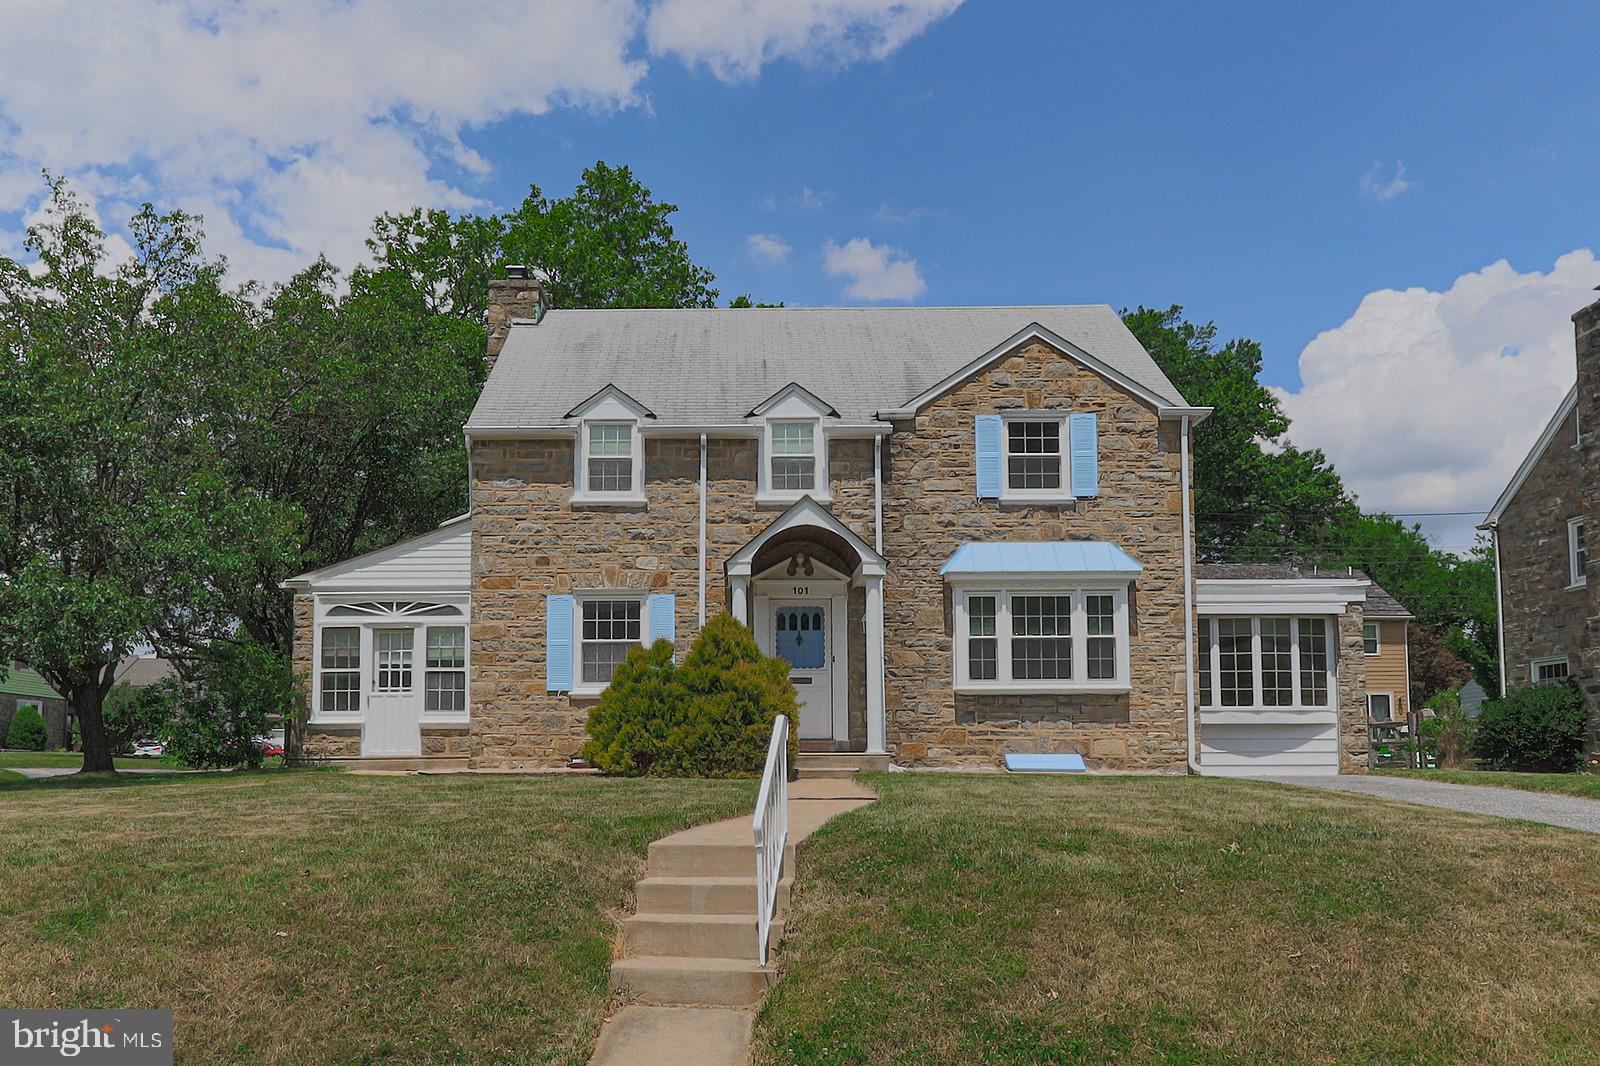 This charming home situated on a premier corner lot and on a picturesque street will surely capture